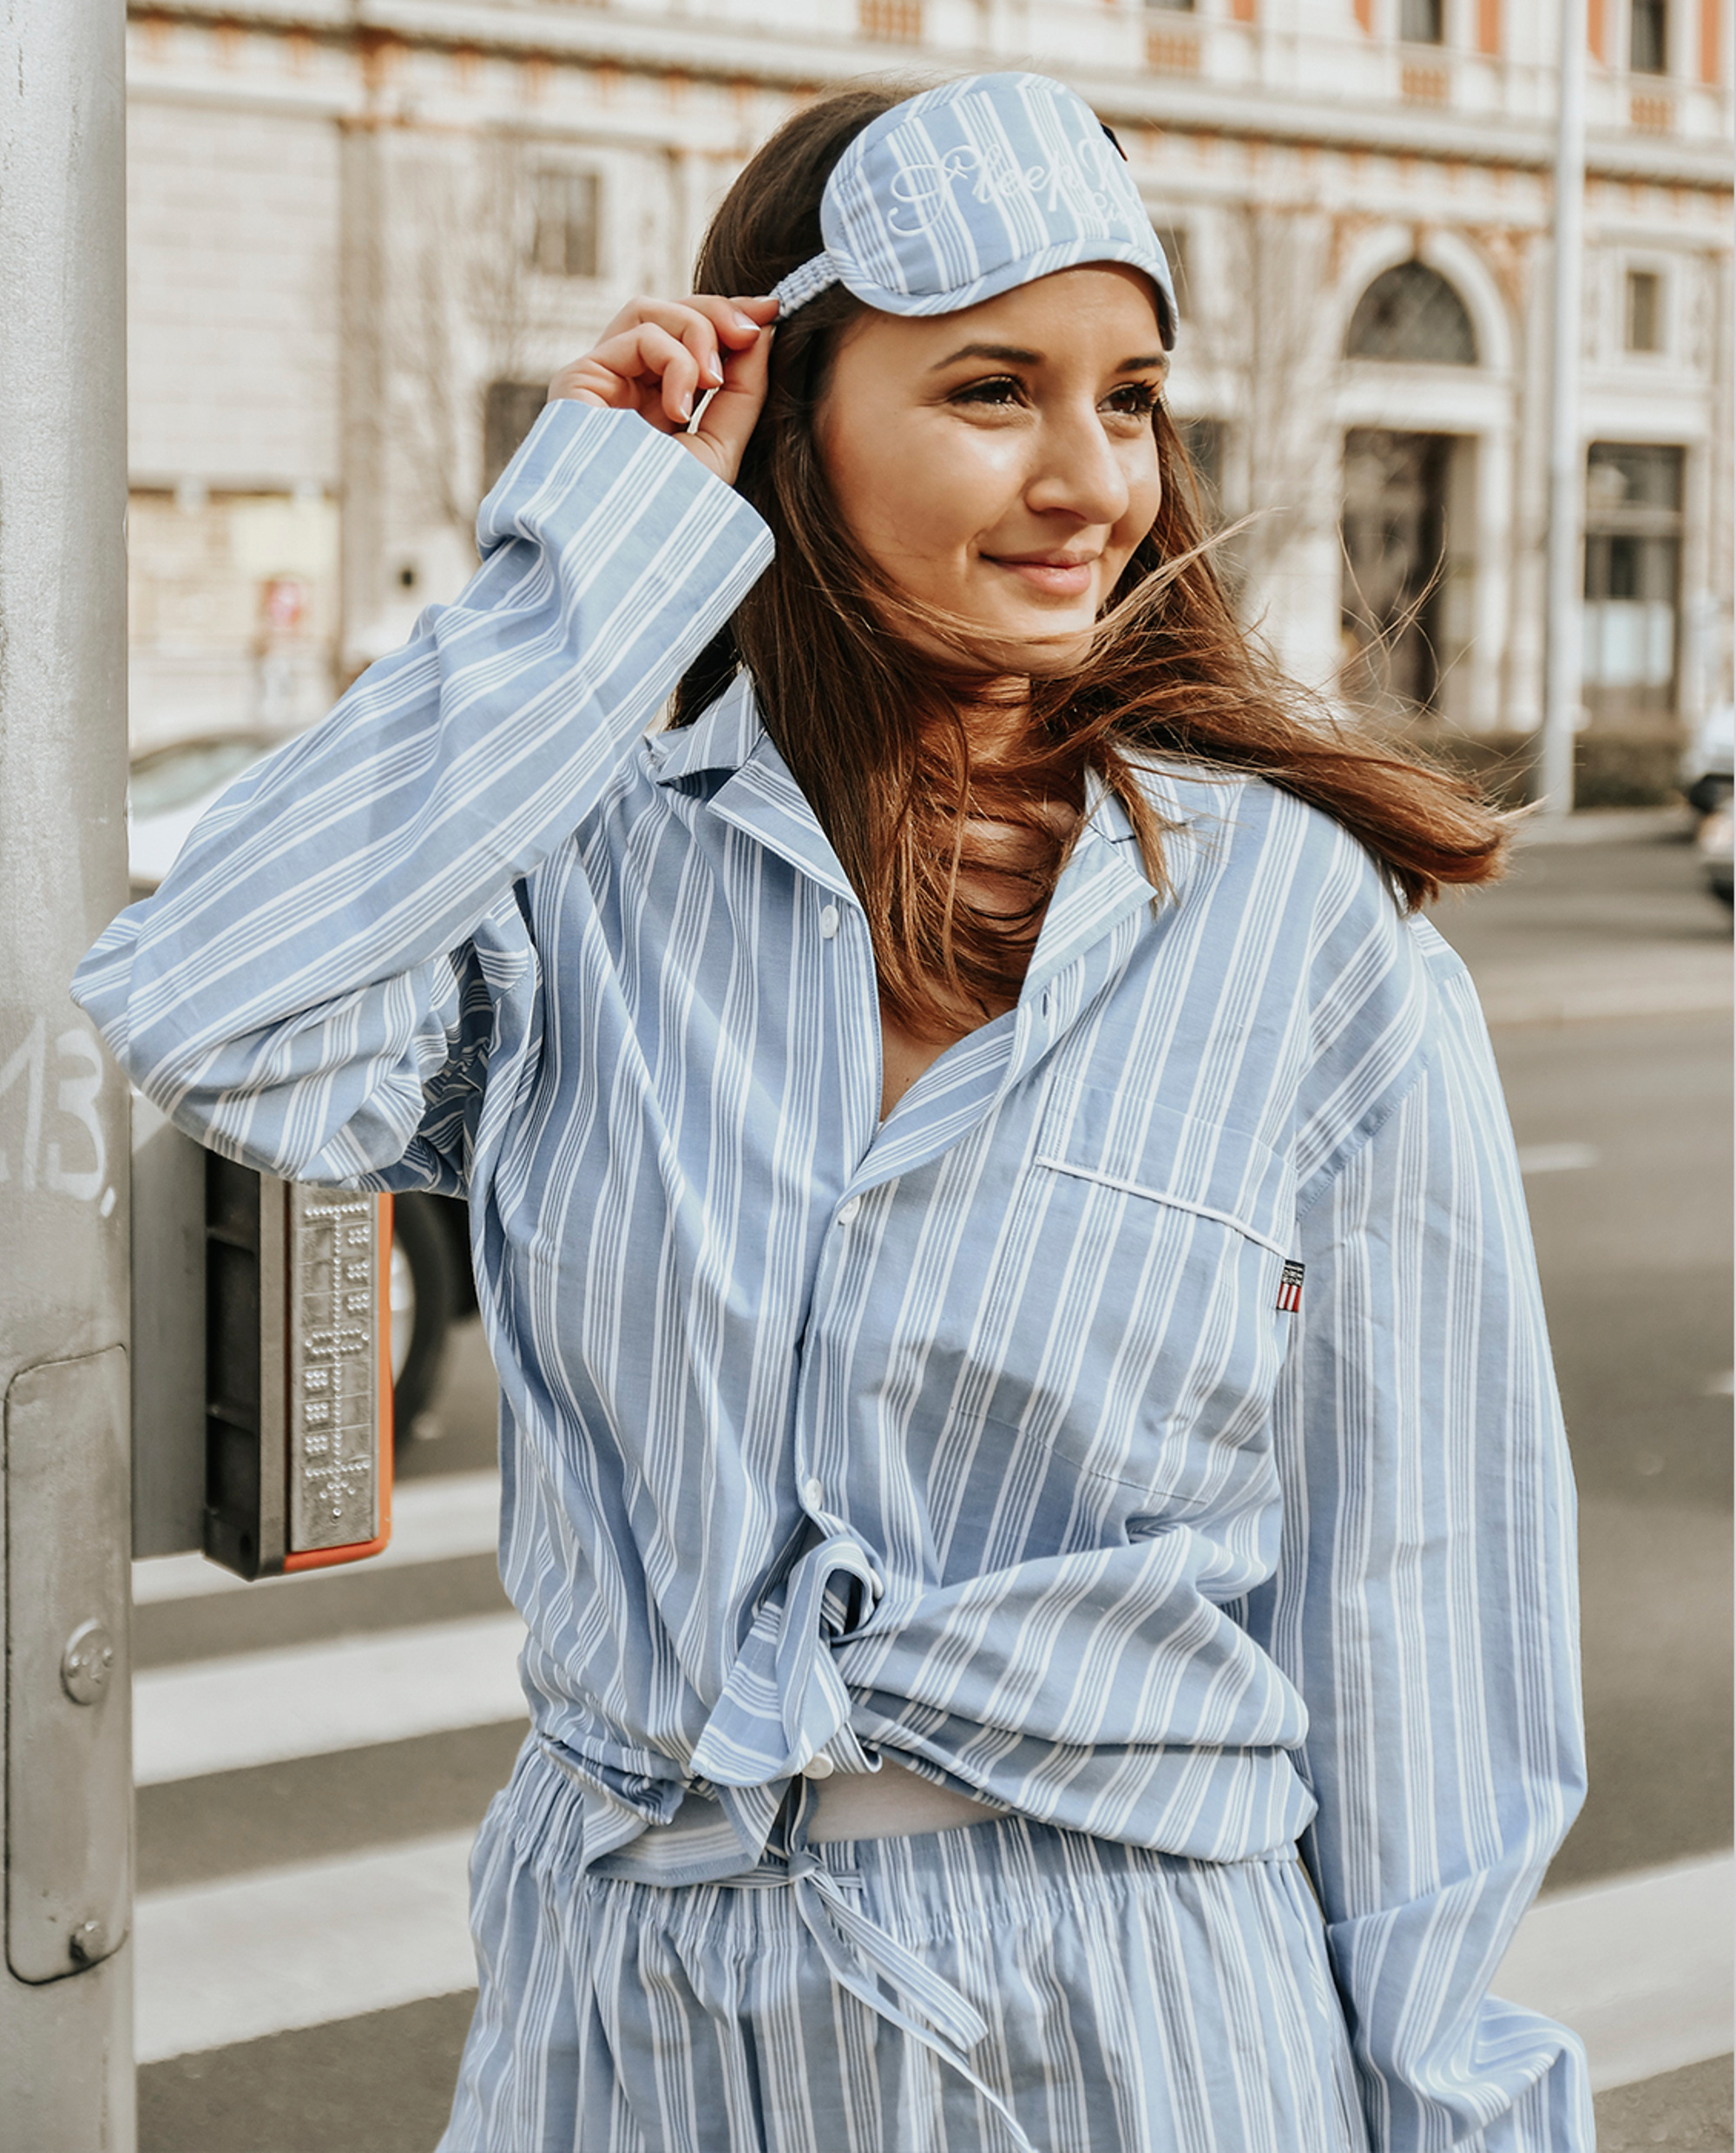 Limited-edition Unisex Sleepy Striped Pajama + Sleep Mask